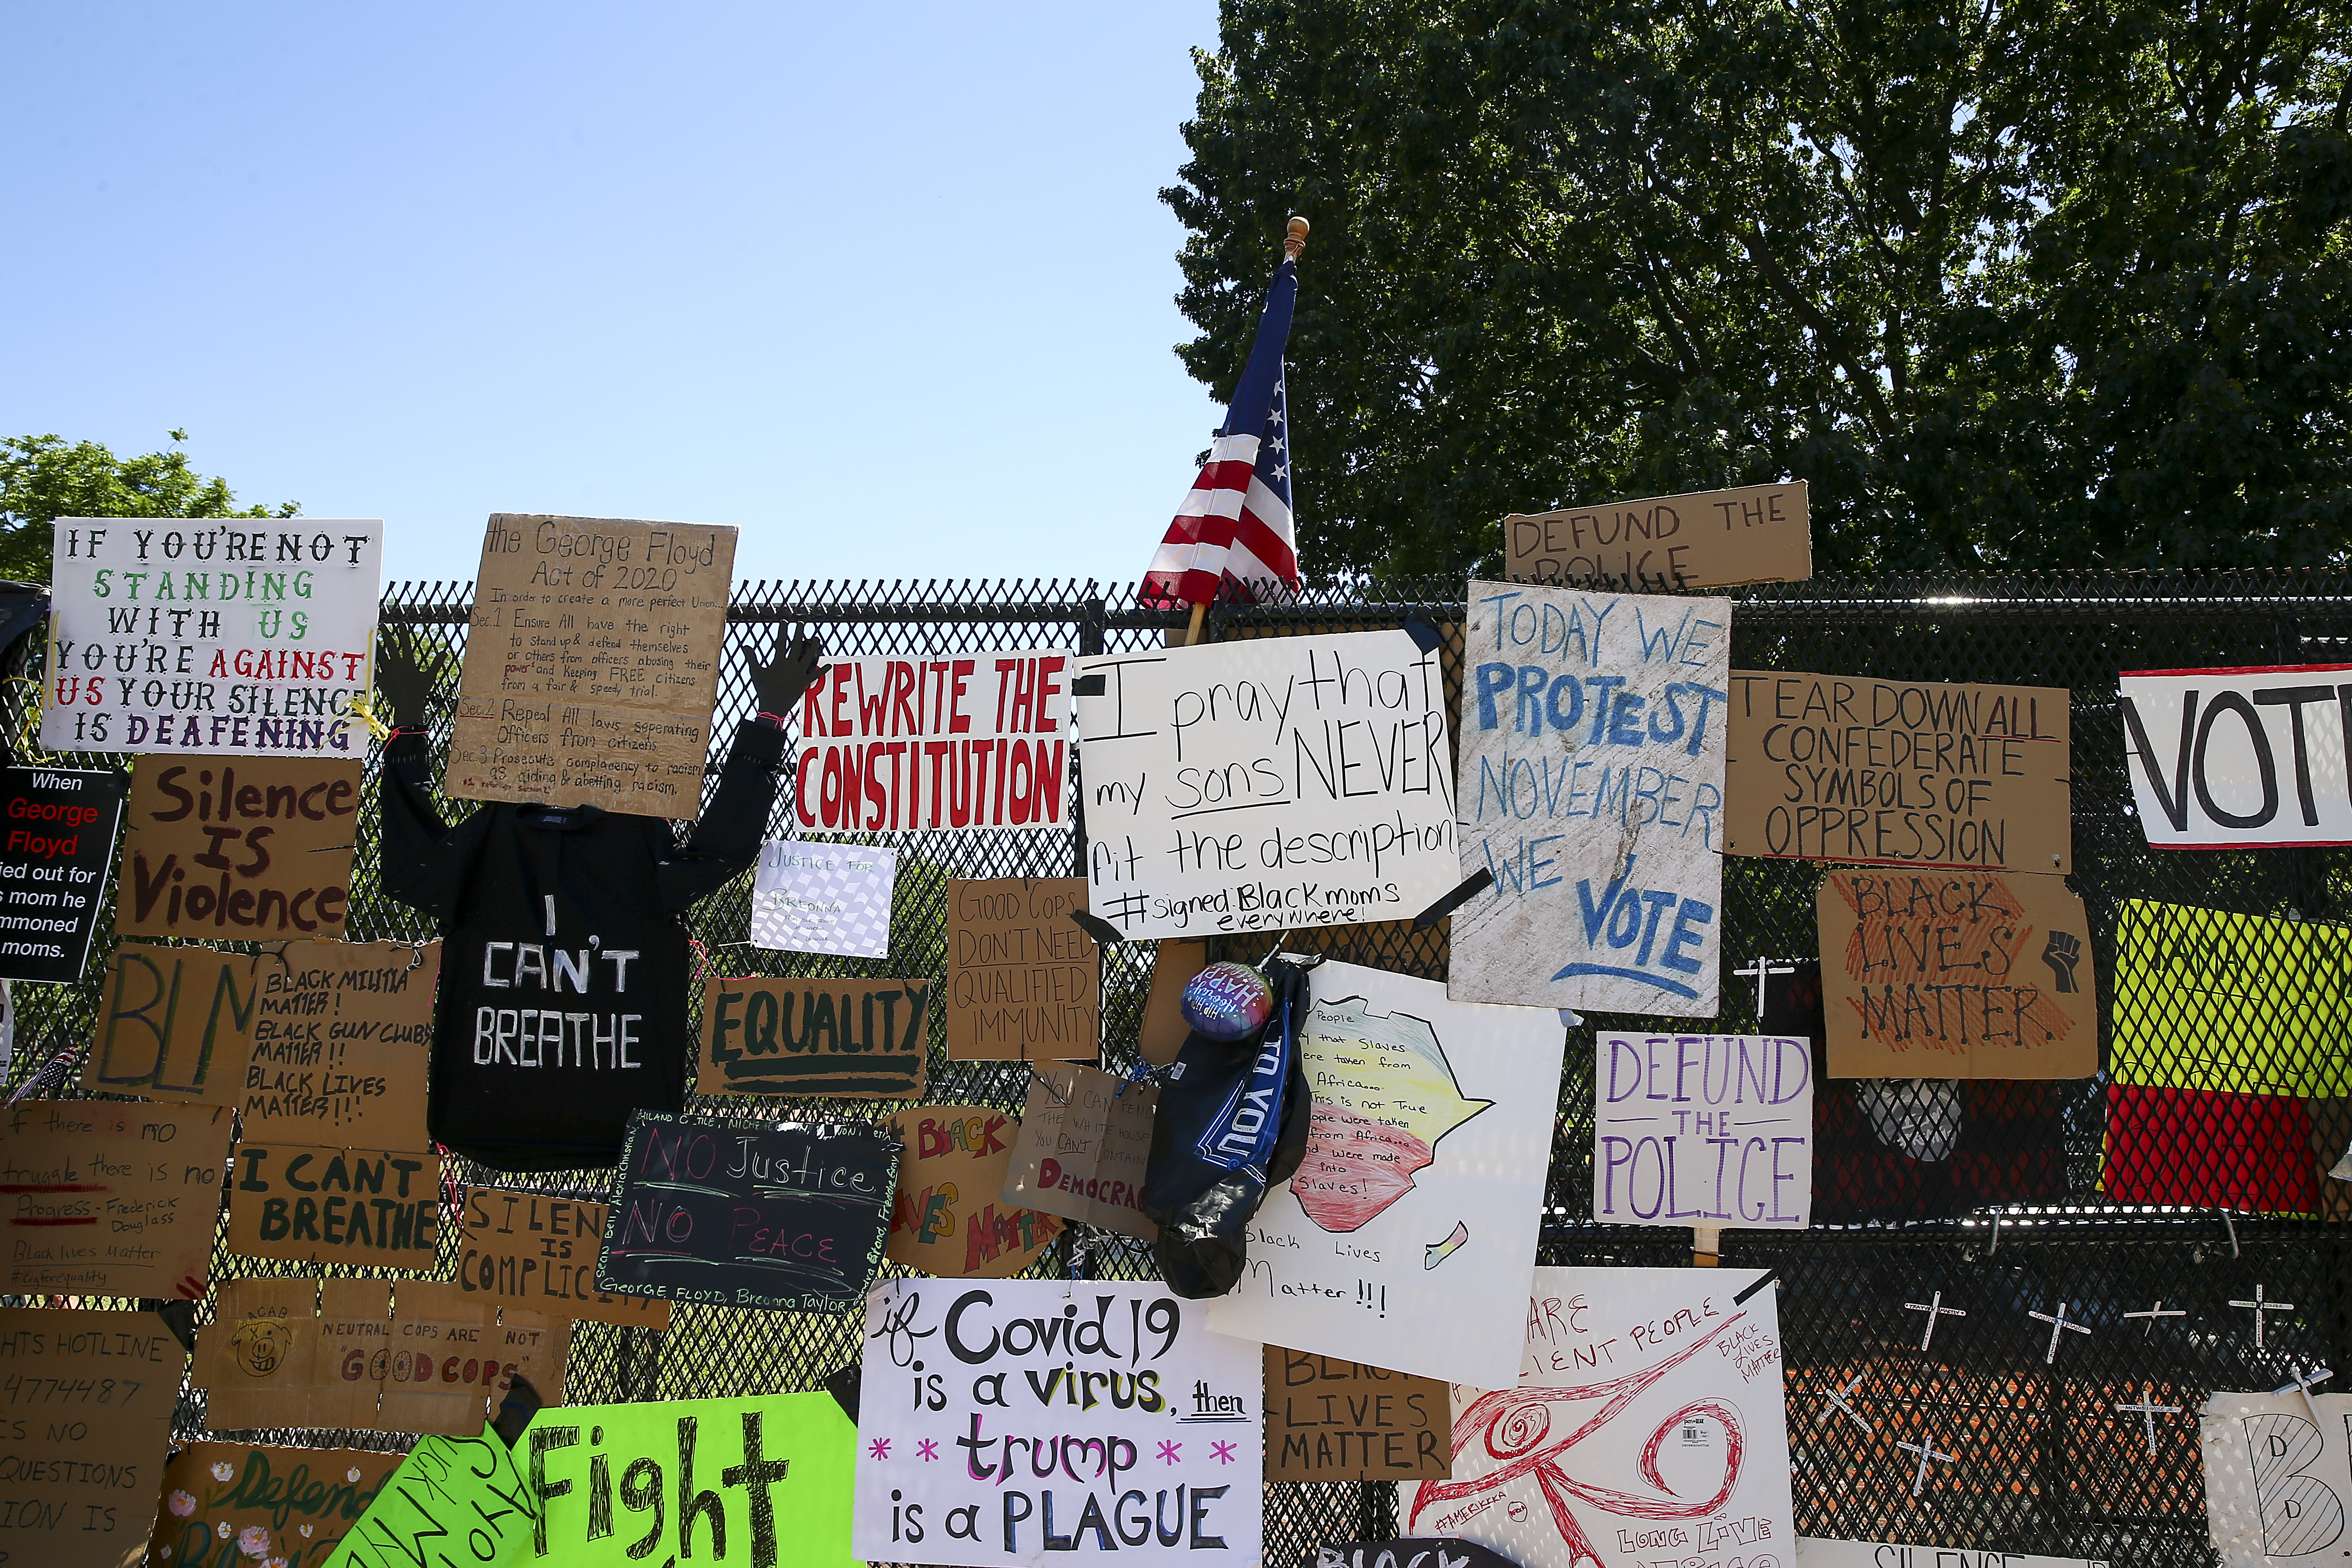 """WASHINGTON, DC - JUNE 08: The steel fence at Lafayette Park has become a makeshift memorial at 16th street after """"Defund The Police"""" was painted on the street near the White House on June 08, 2020 in Washington, DC. (Photo by Tasos Katopodis/Getty Images)"""